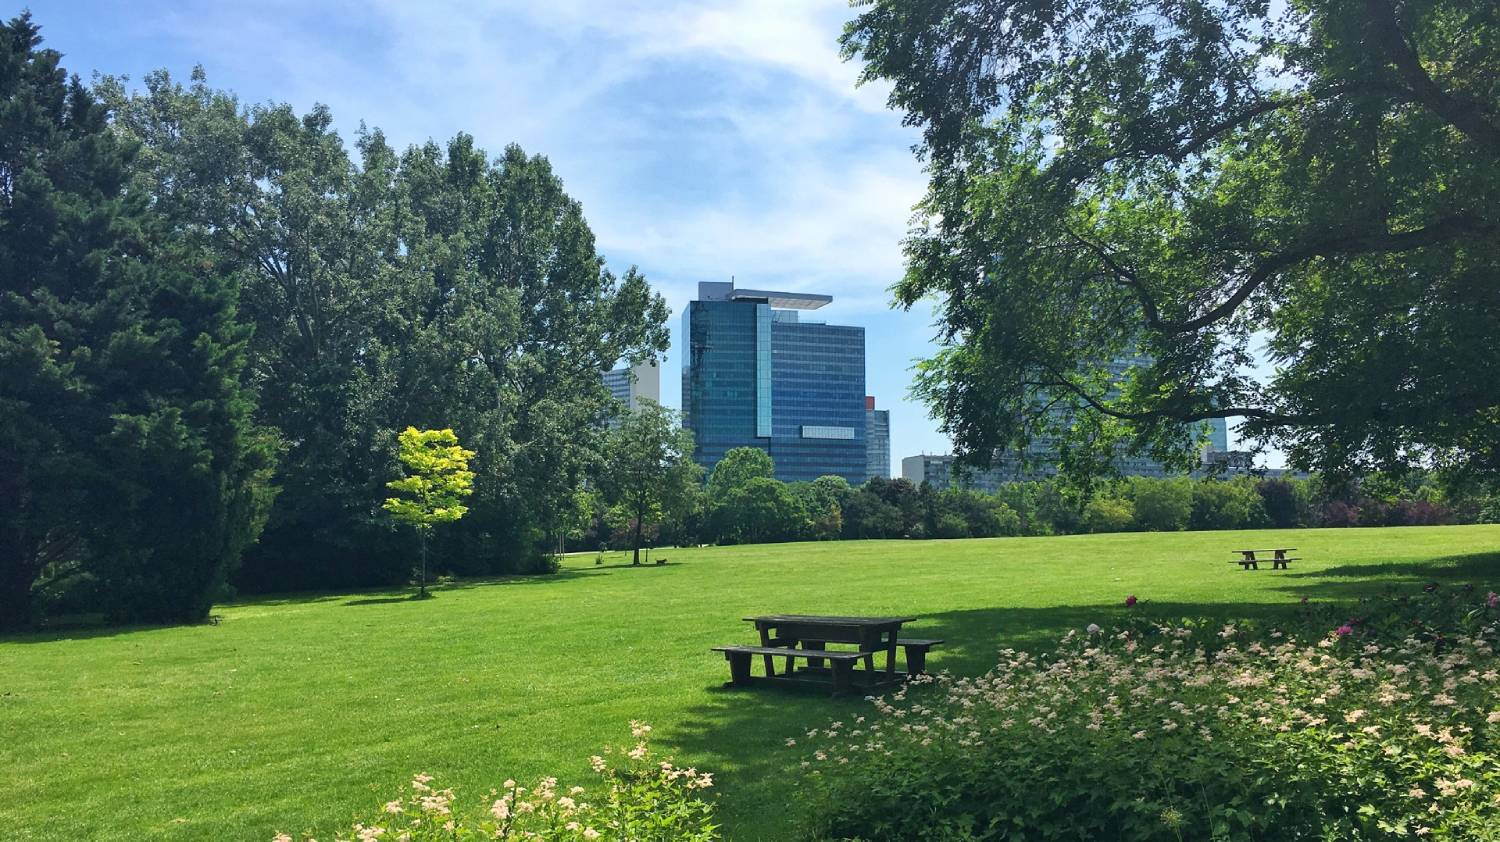 Donau Park - Things To Do In Vienna